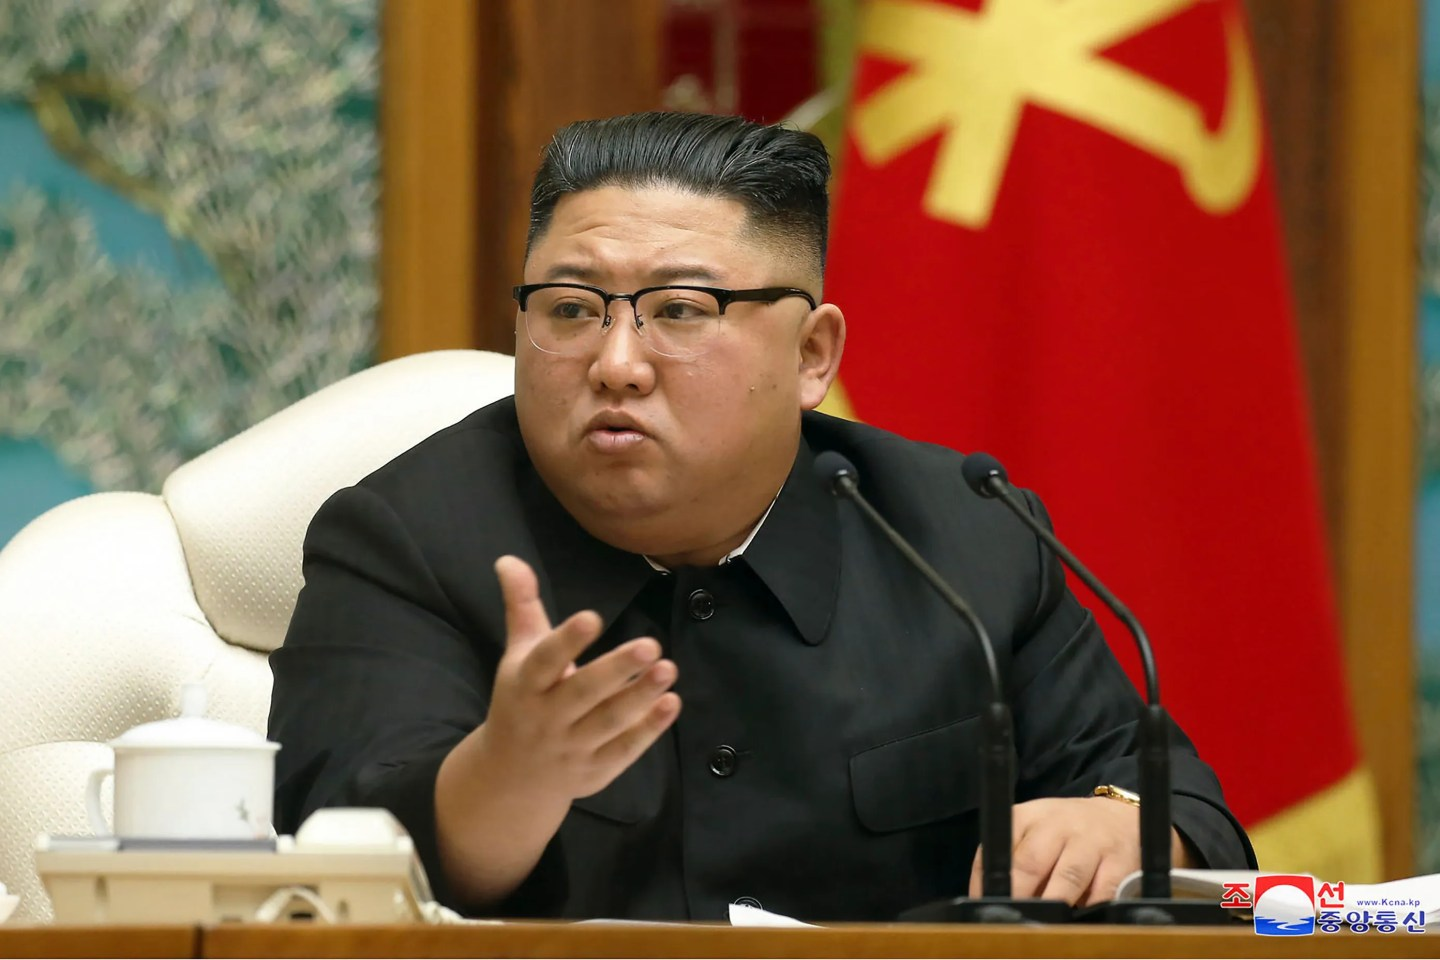 In this Nov. 15, 2020, file photo provided by the North Korean government, North Korean leader Kim Jong Un attends a meeting of the ruling Workers' Party Politburo in Pyongyang, North Korea. Kim ordered at least two people executed, banned fishing at sea and locked down capital Pyongyang as part of frantic efforts to guard against the coronavirus and its economic damage, South Korea's spy agency told lawmakers Friday, Nov. 27.